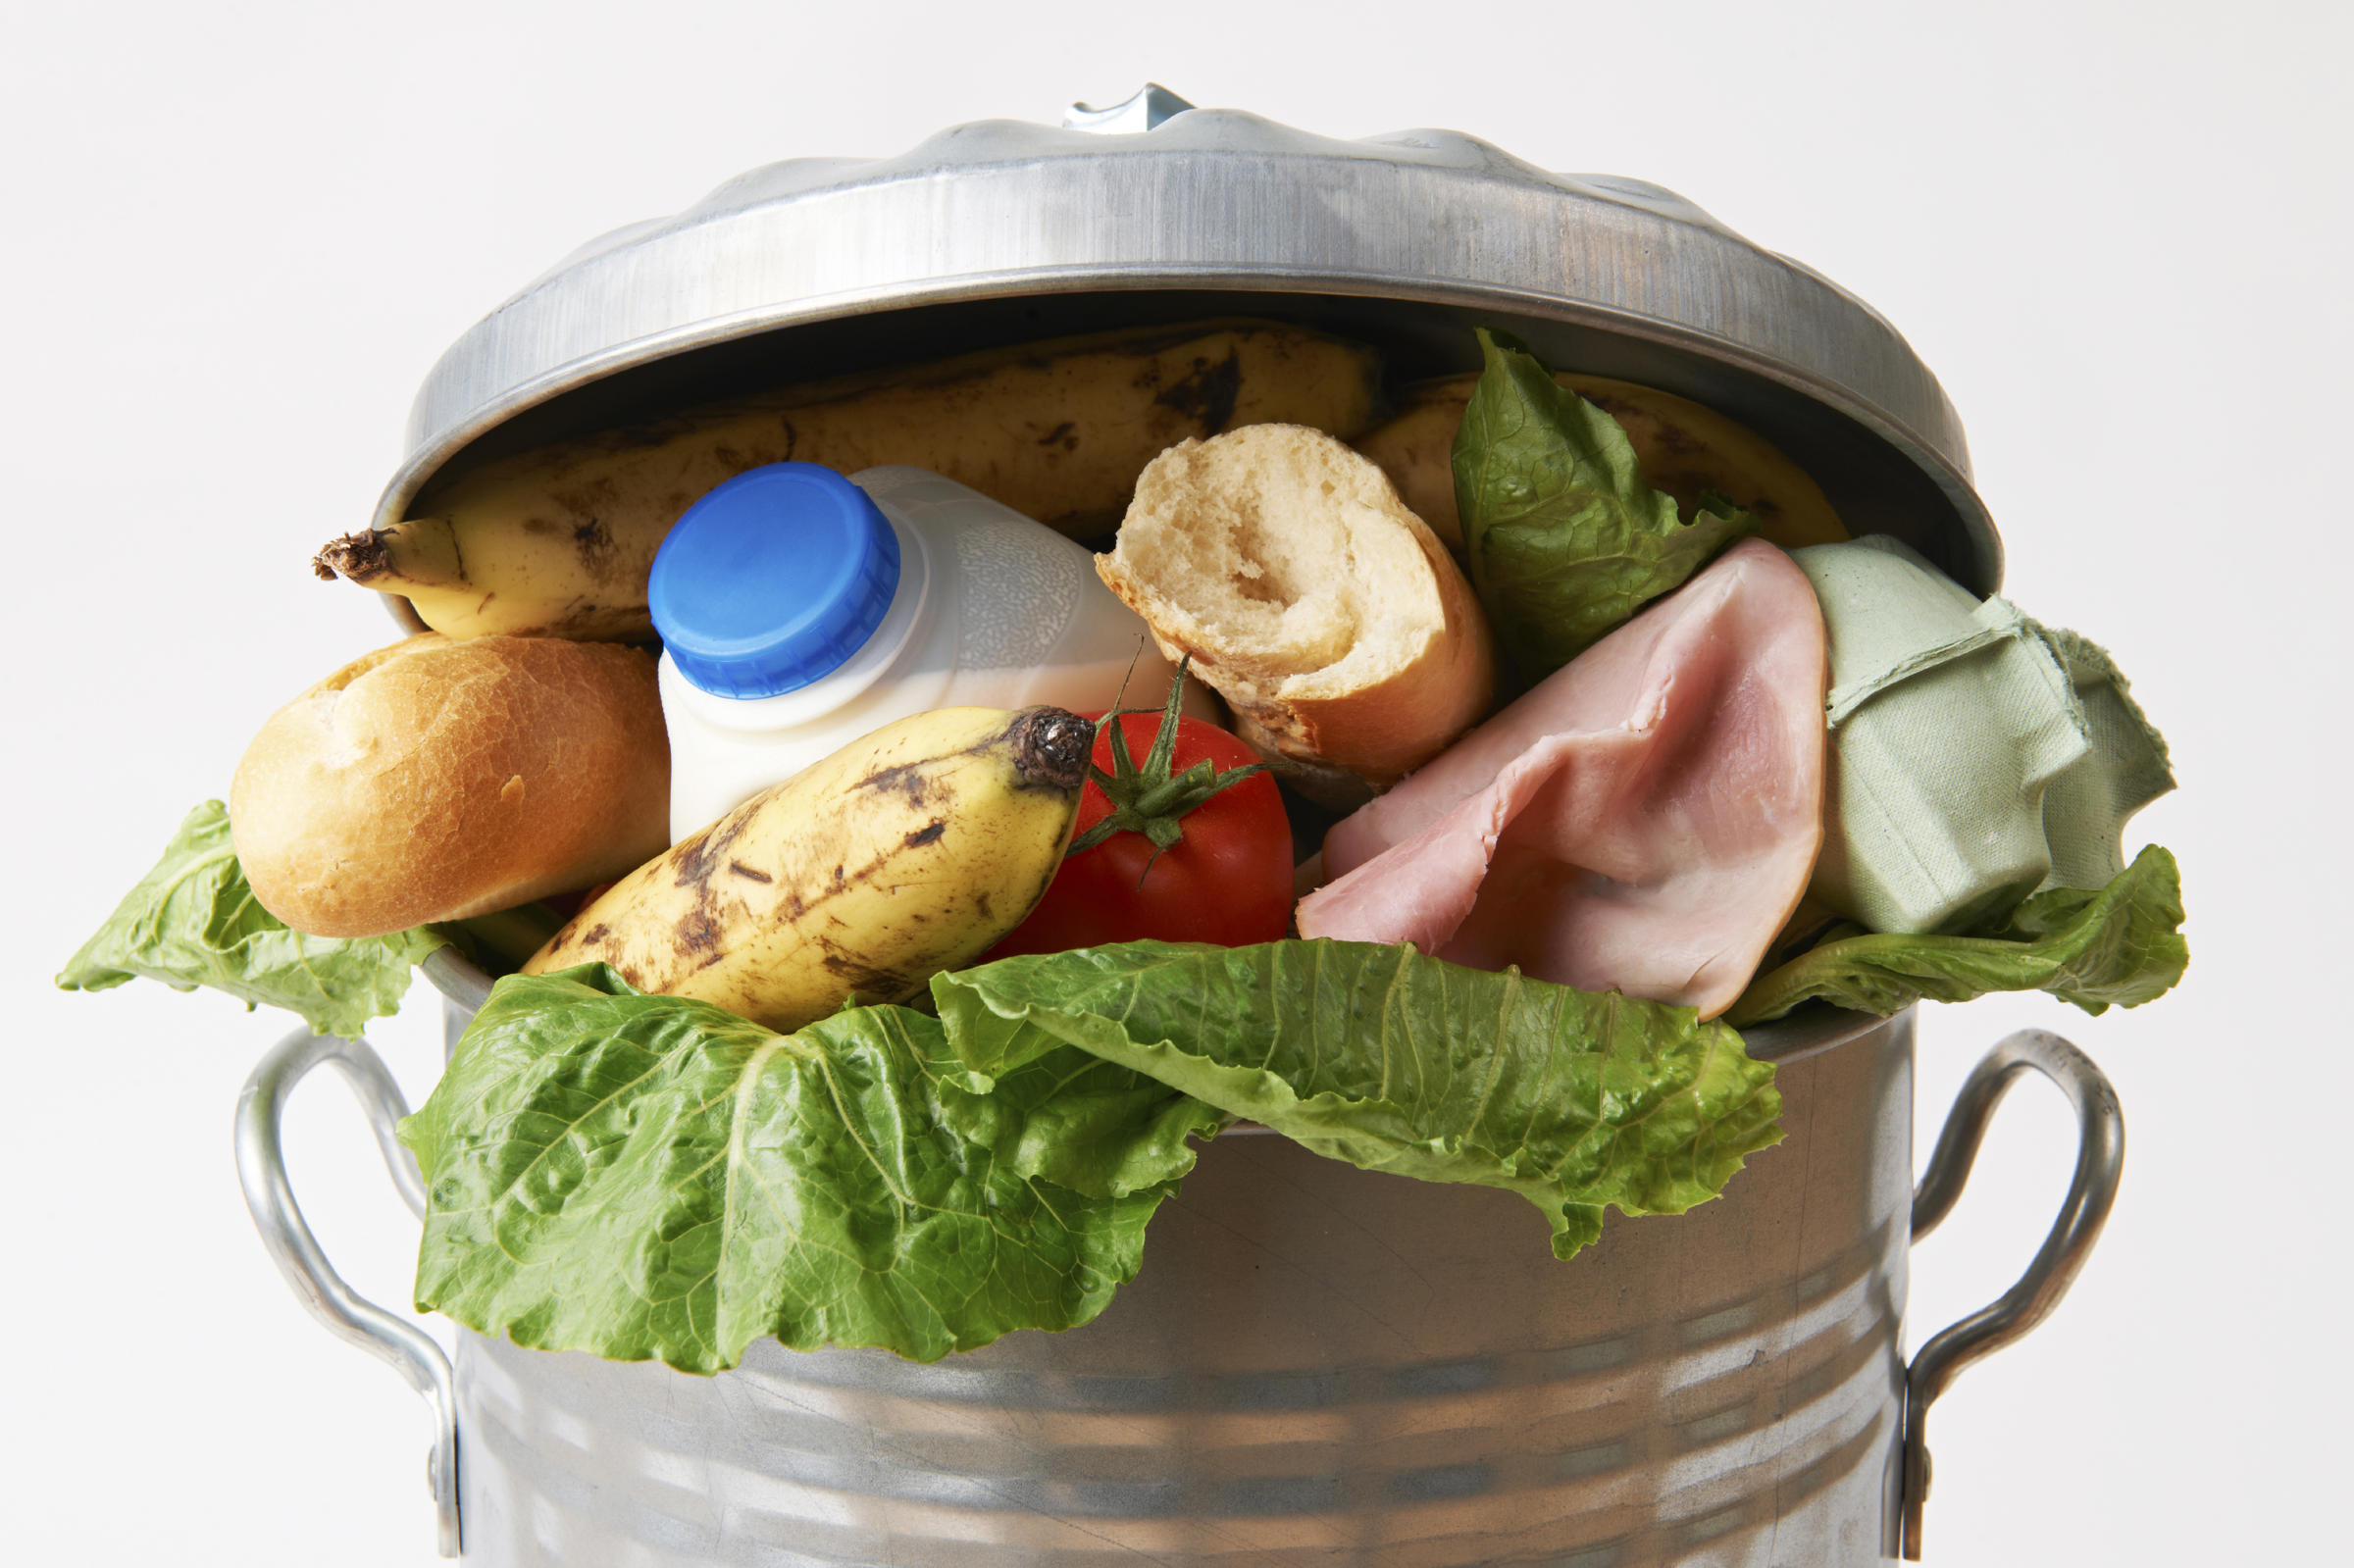 Finding Real-Life Solutions to Growing Food Waste Epidemic: Estimated 30-40% of Food Goes into the Garbage